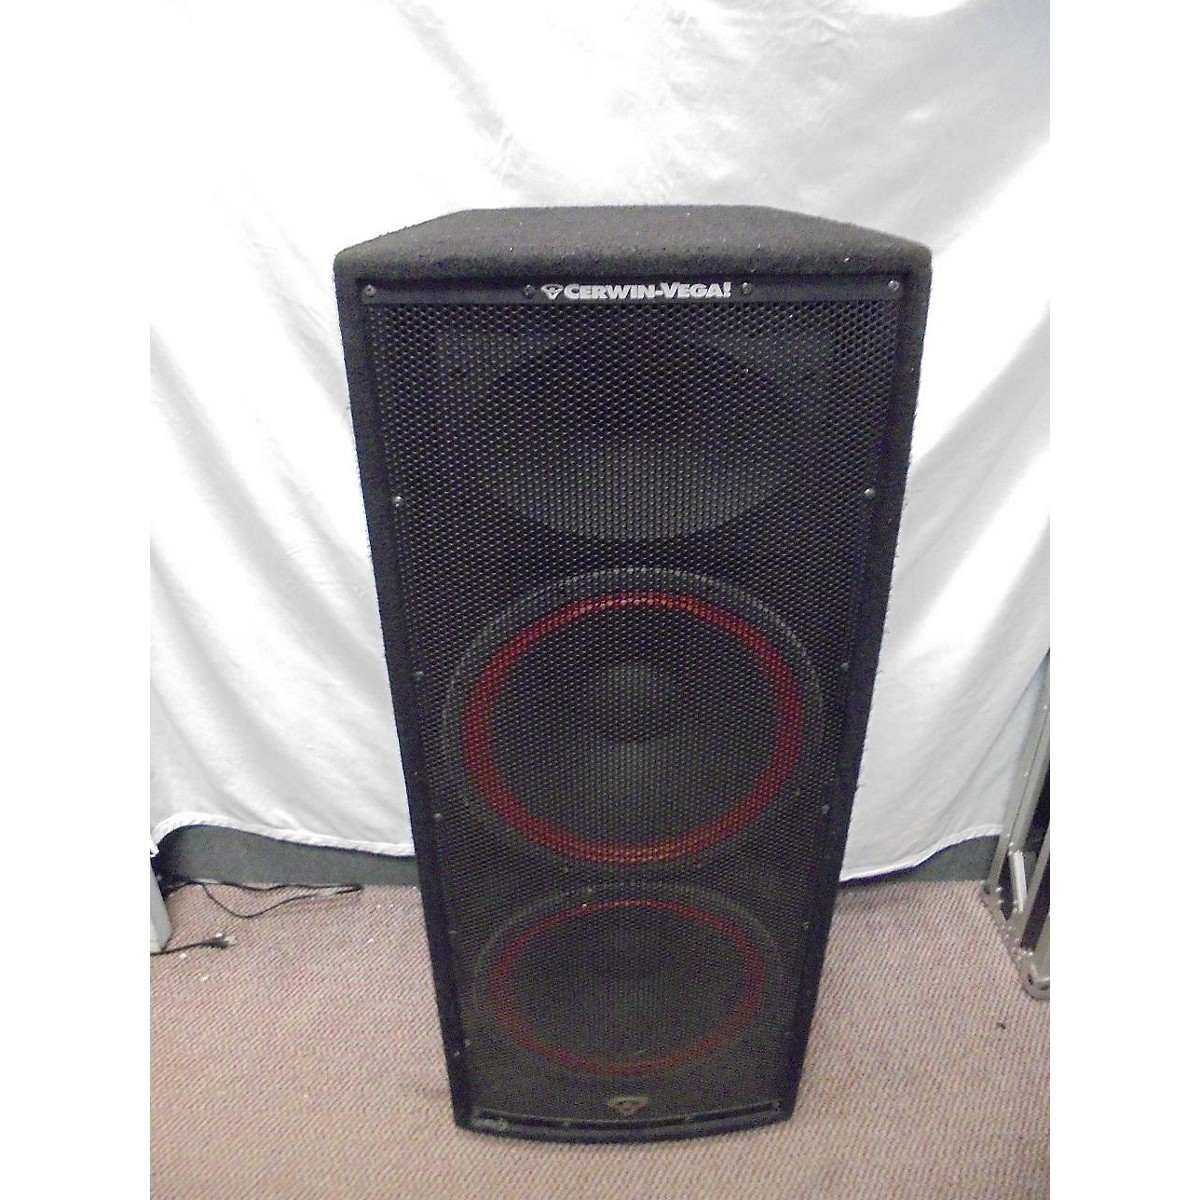 Cerwin-Vega CVI252 Unpowered Subwoofer